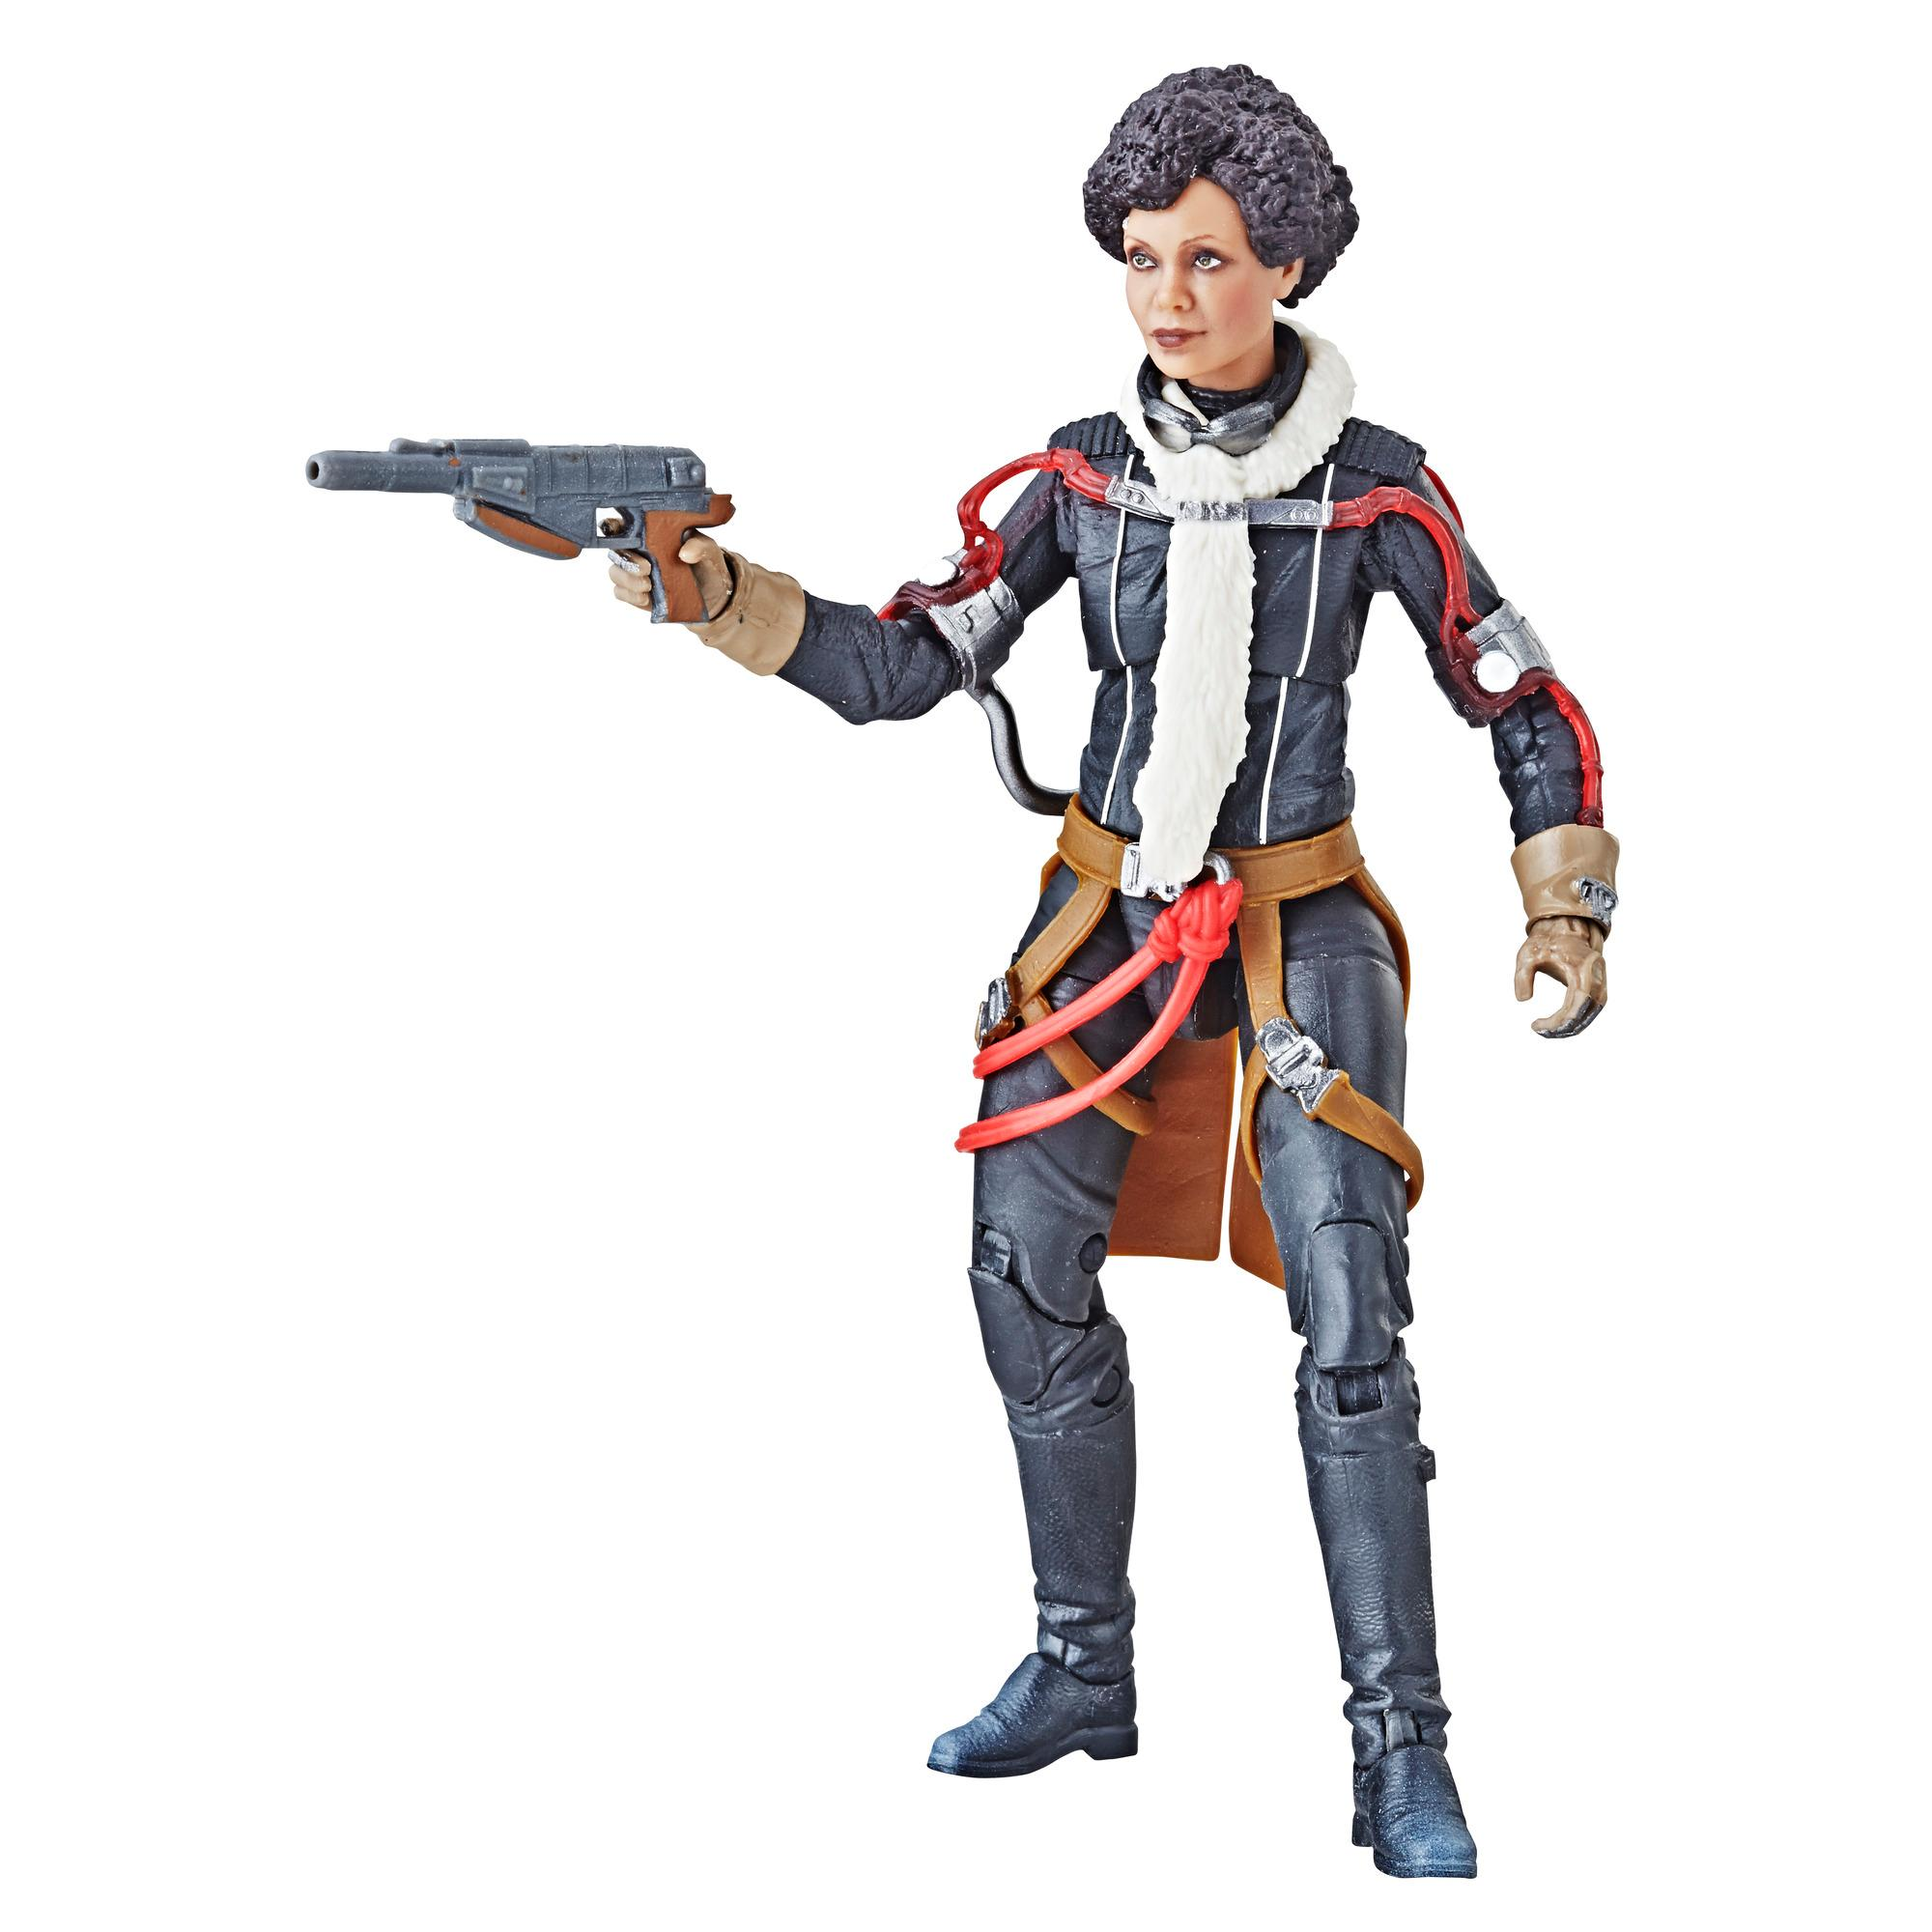 Star Wars The Black Series 6-inch Val (Mimban) Figure